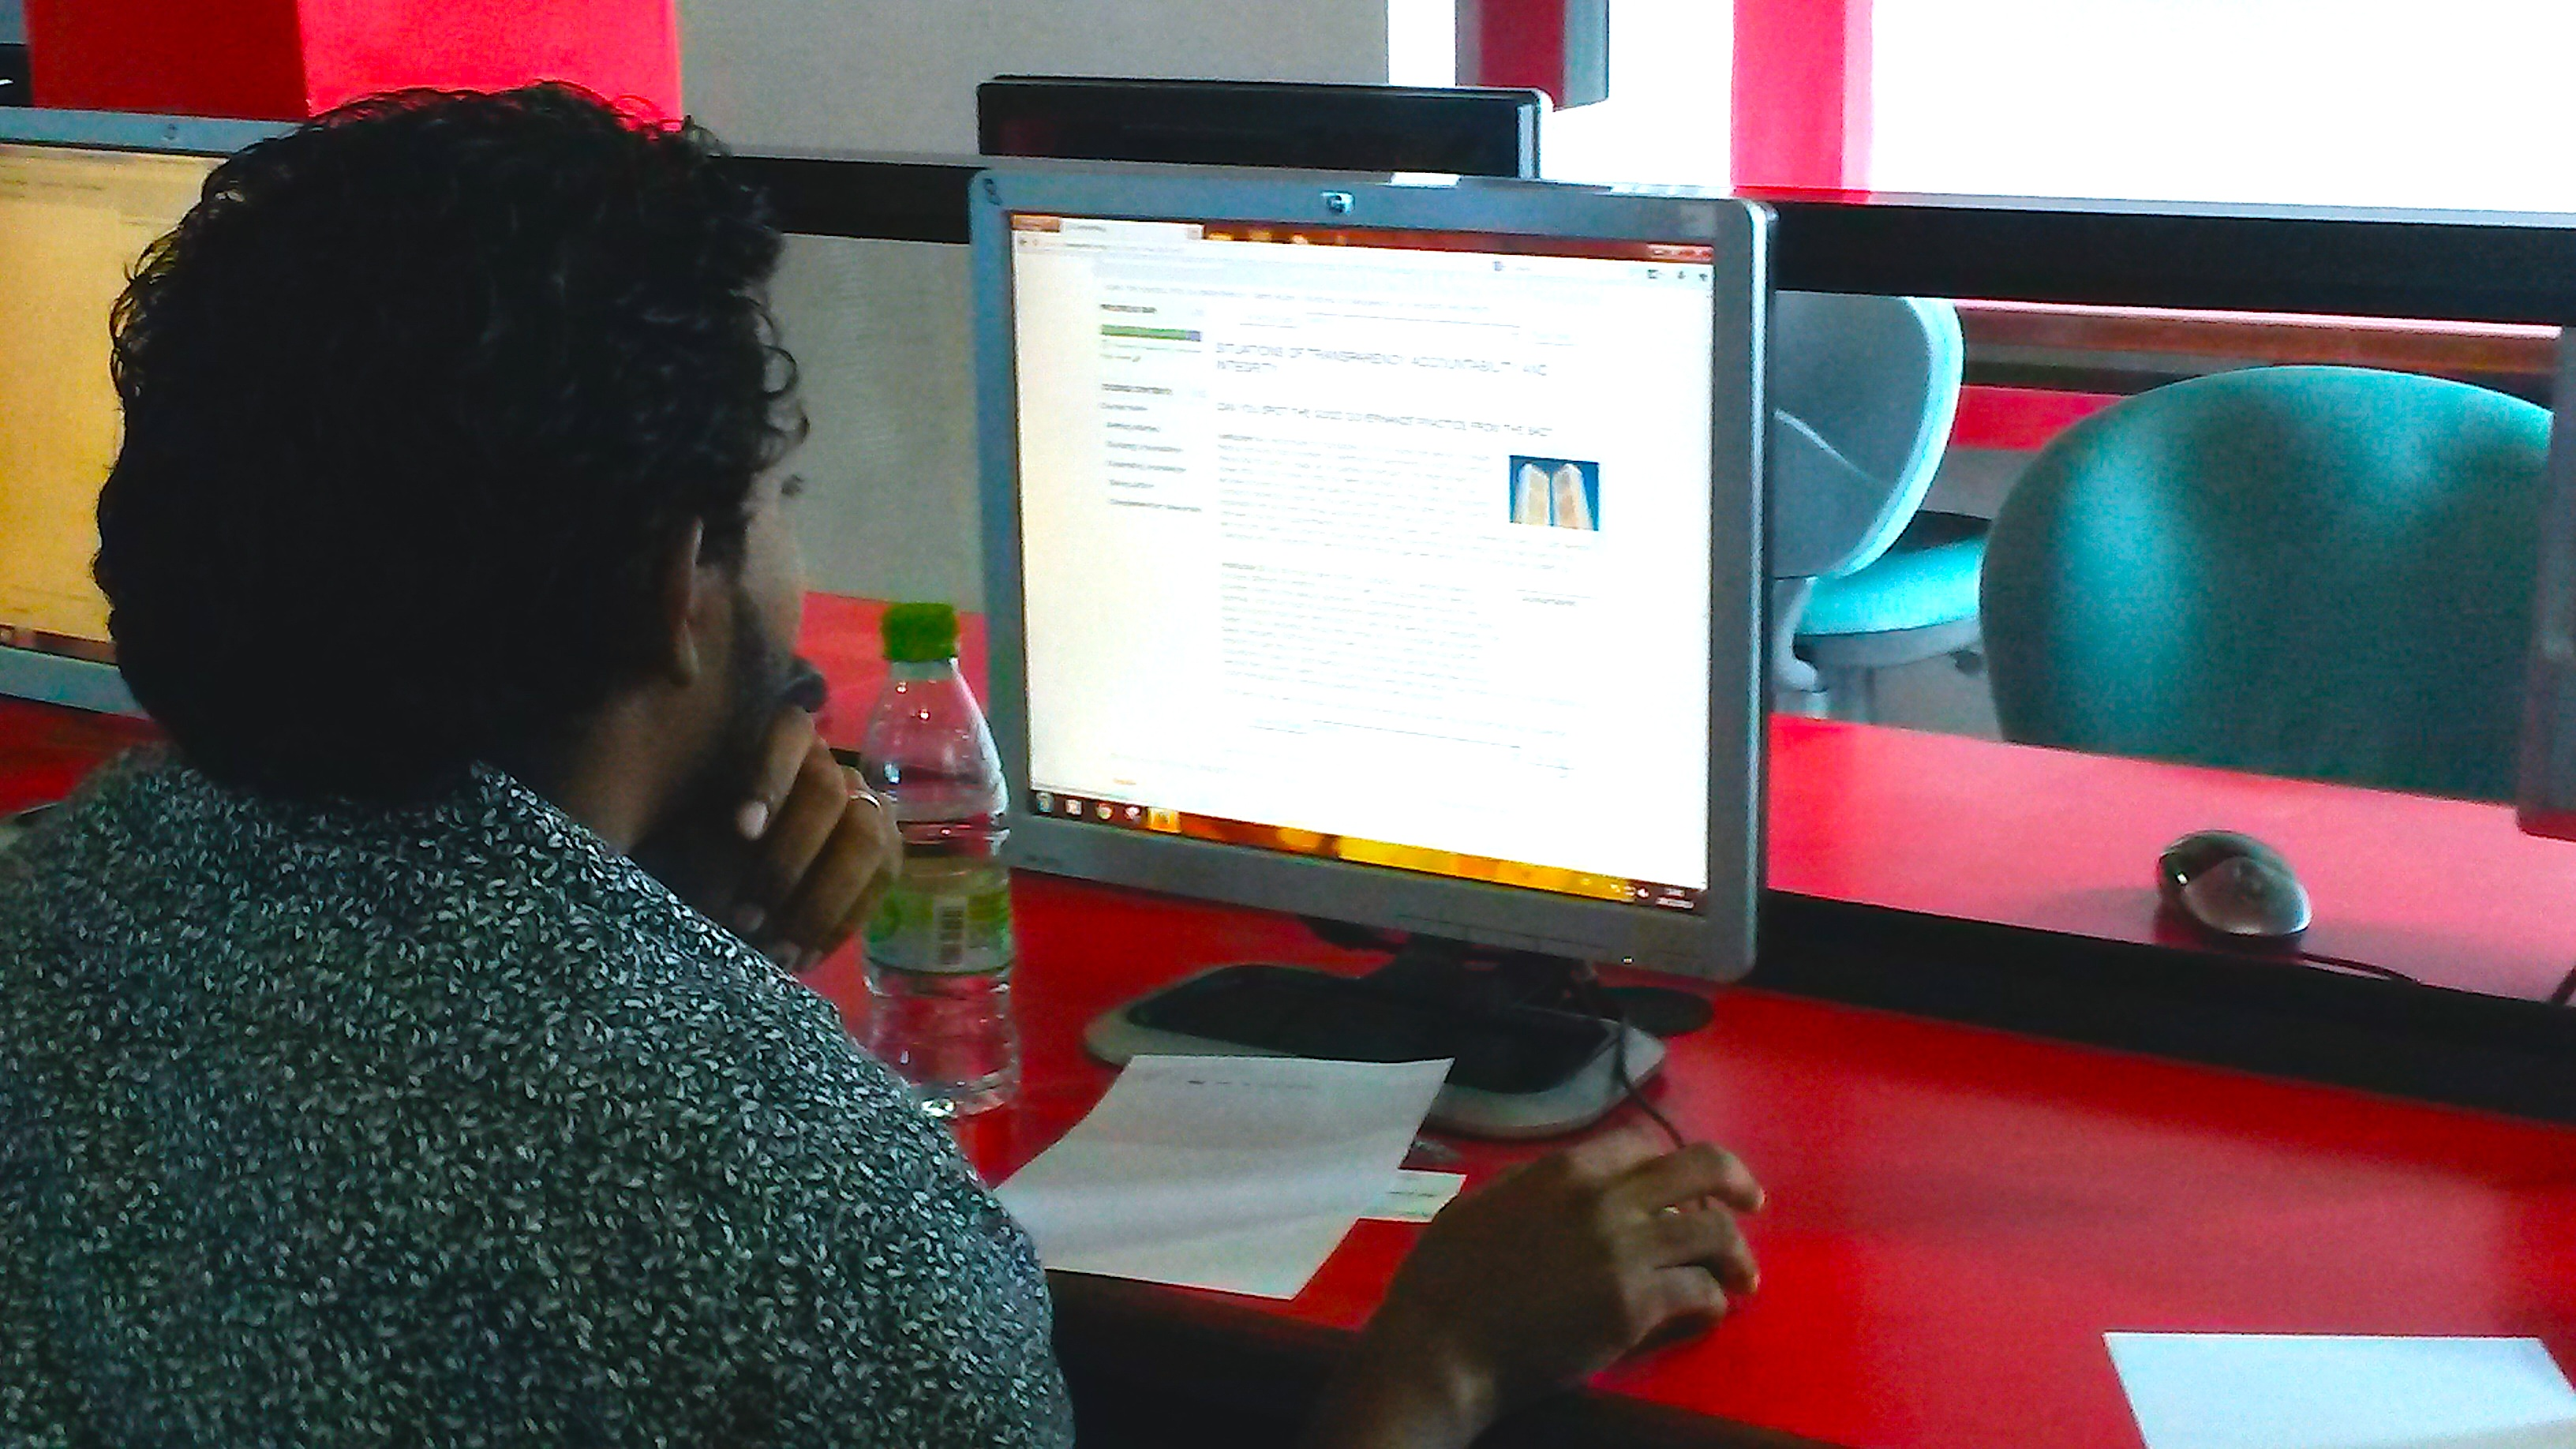 Student of BSc in Environmental Sciences Maldives National University The course builds on technical knowledge of the students to complement practical challenges of implementation